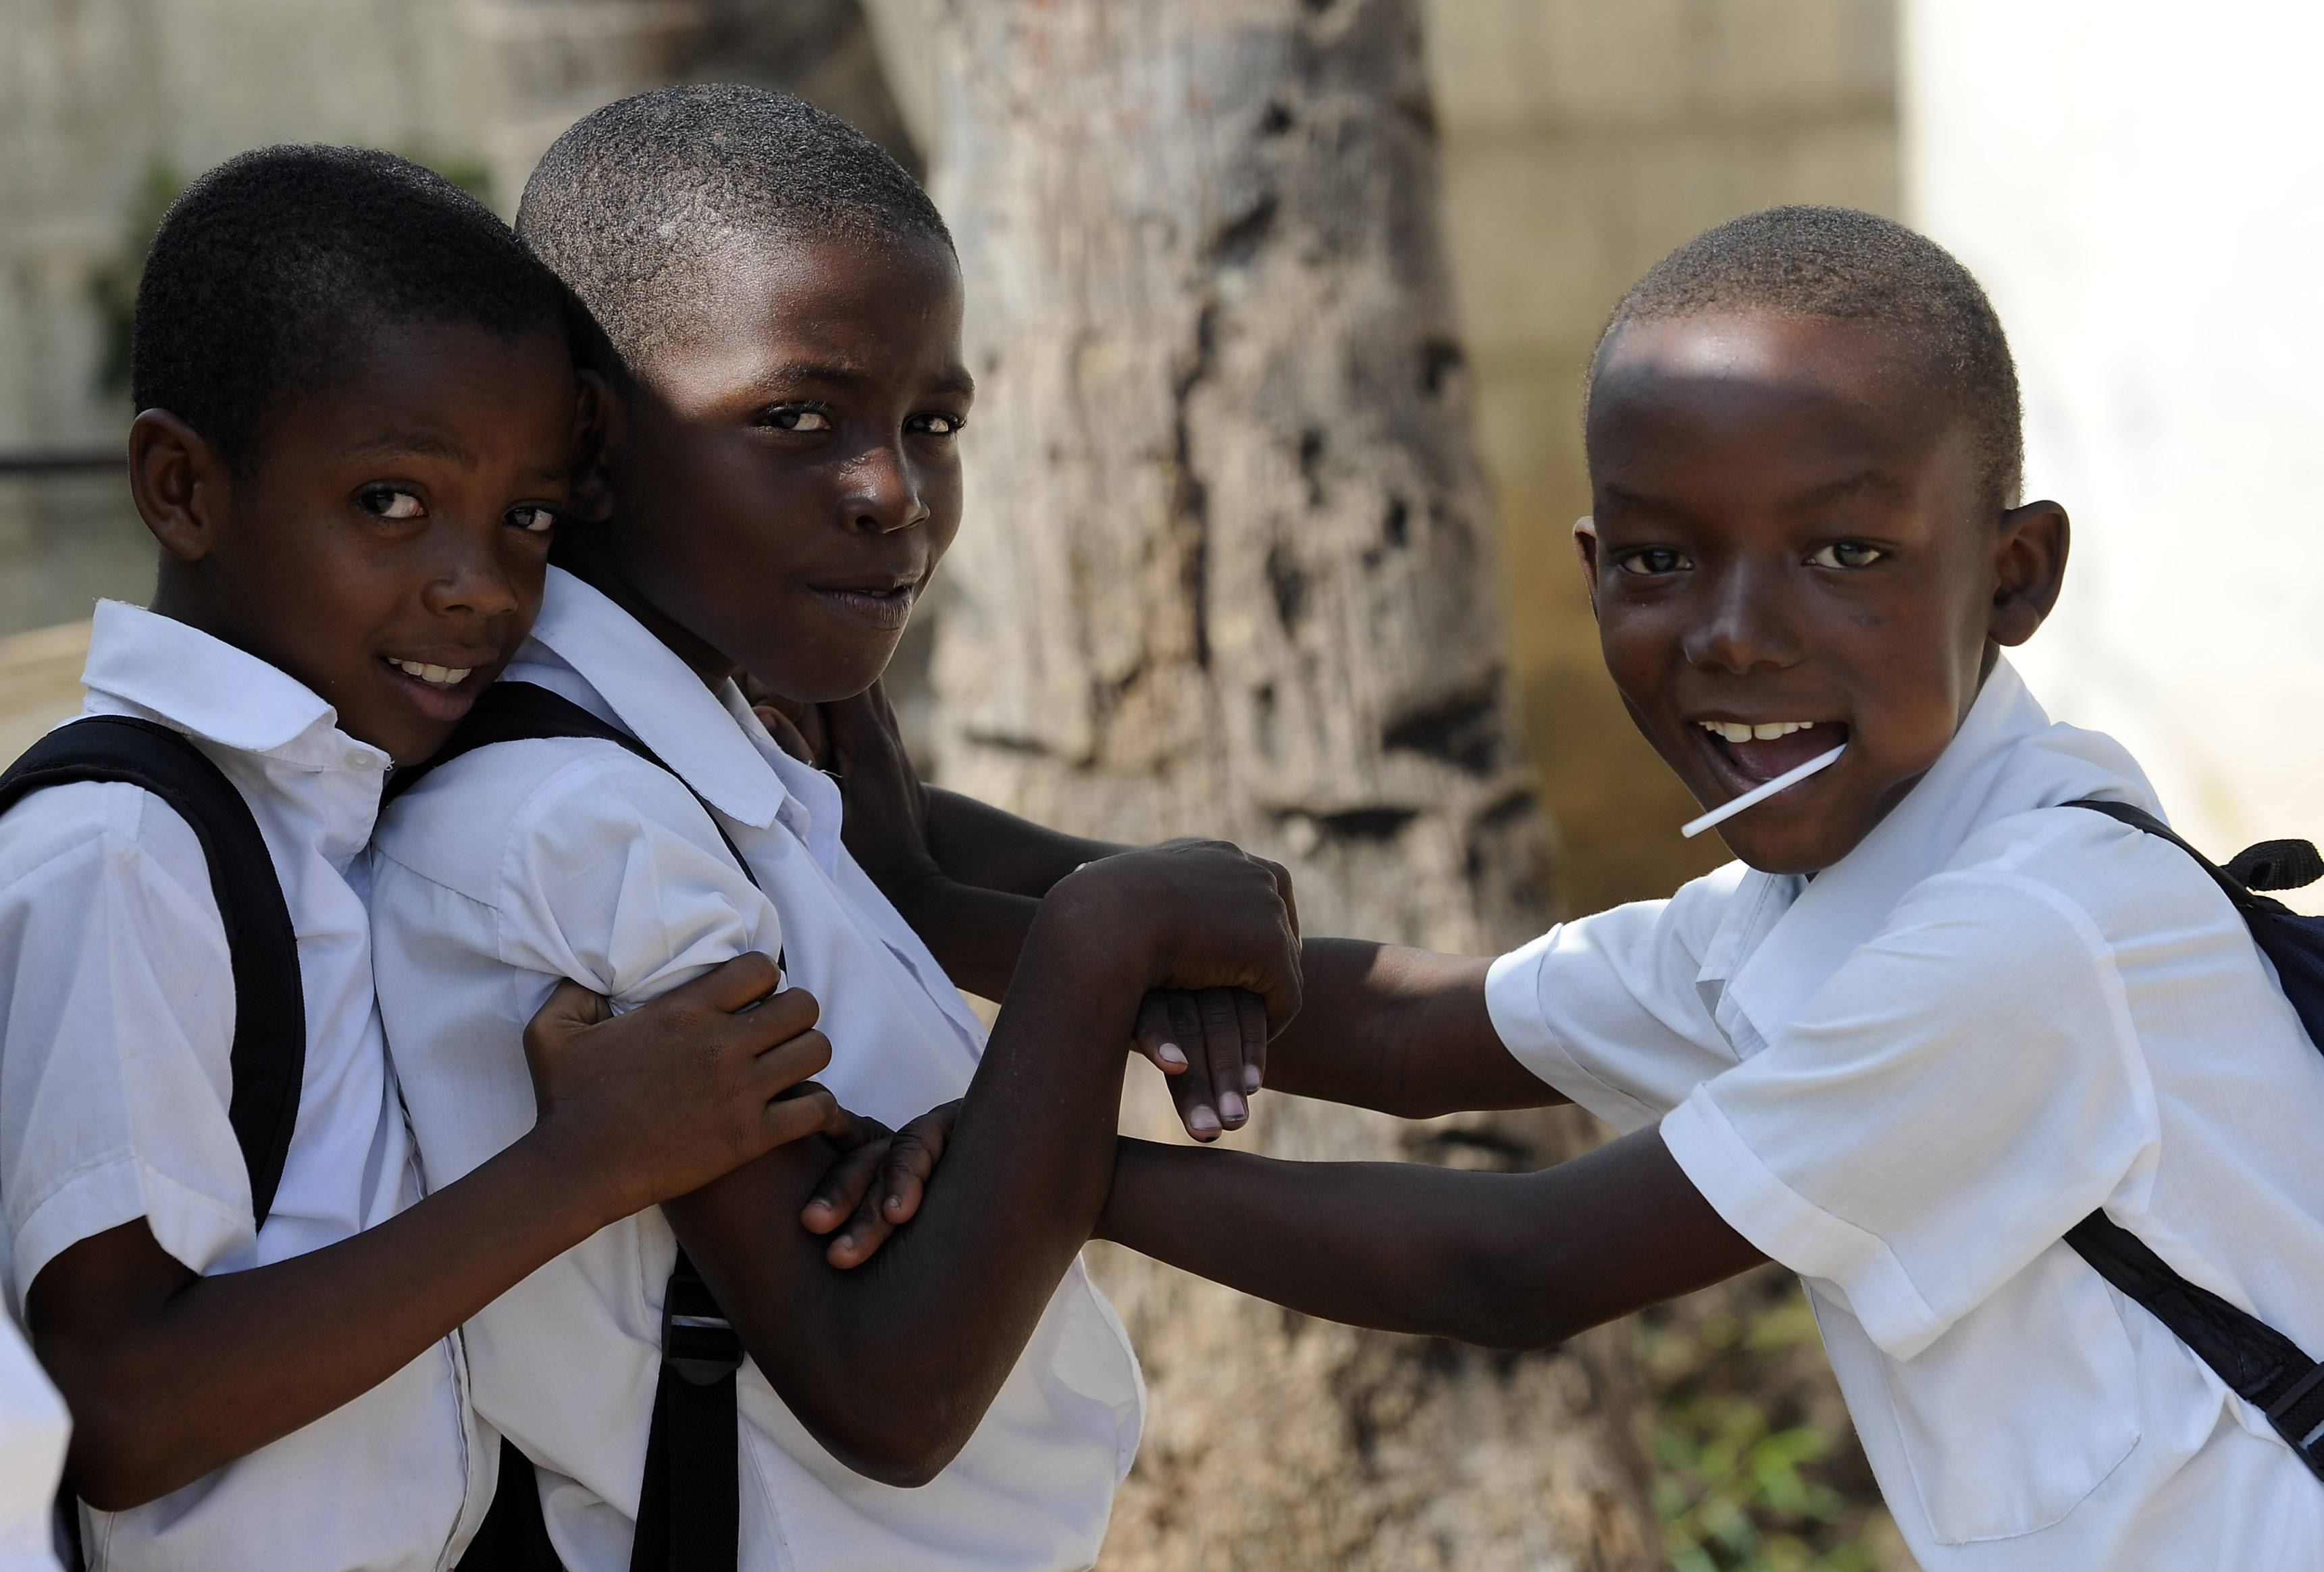 Haitian children play after school in Jacmel, Haiti.